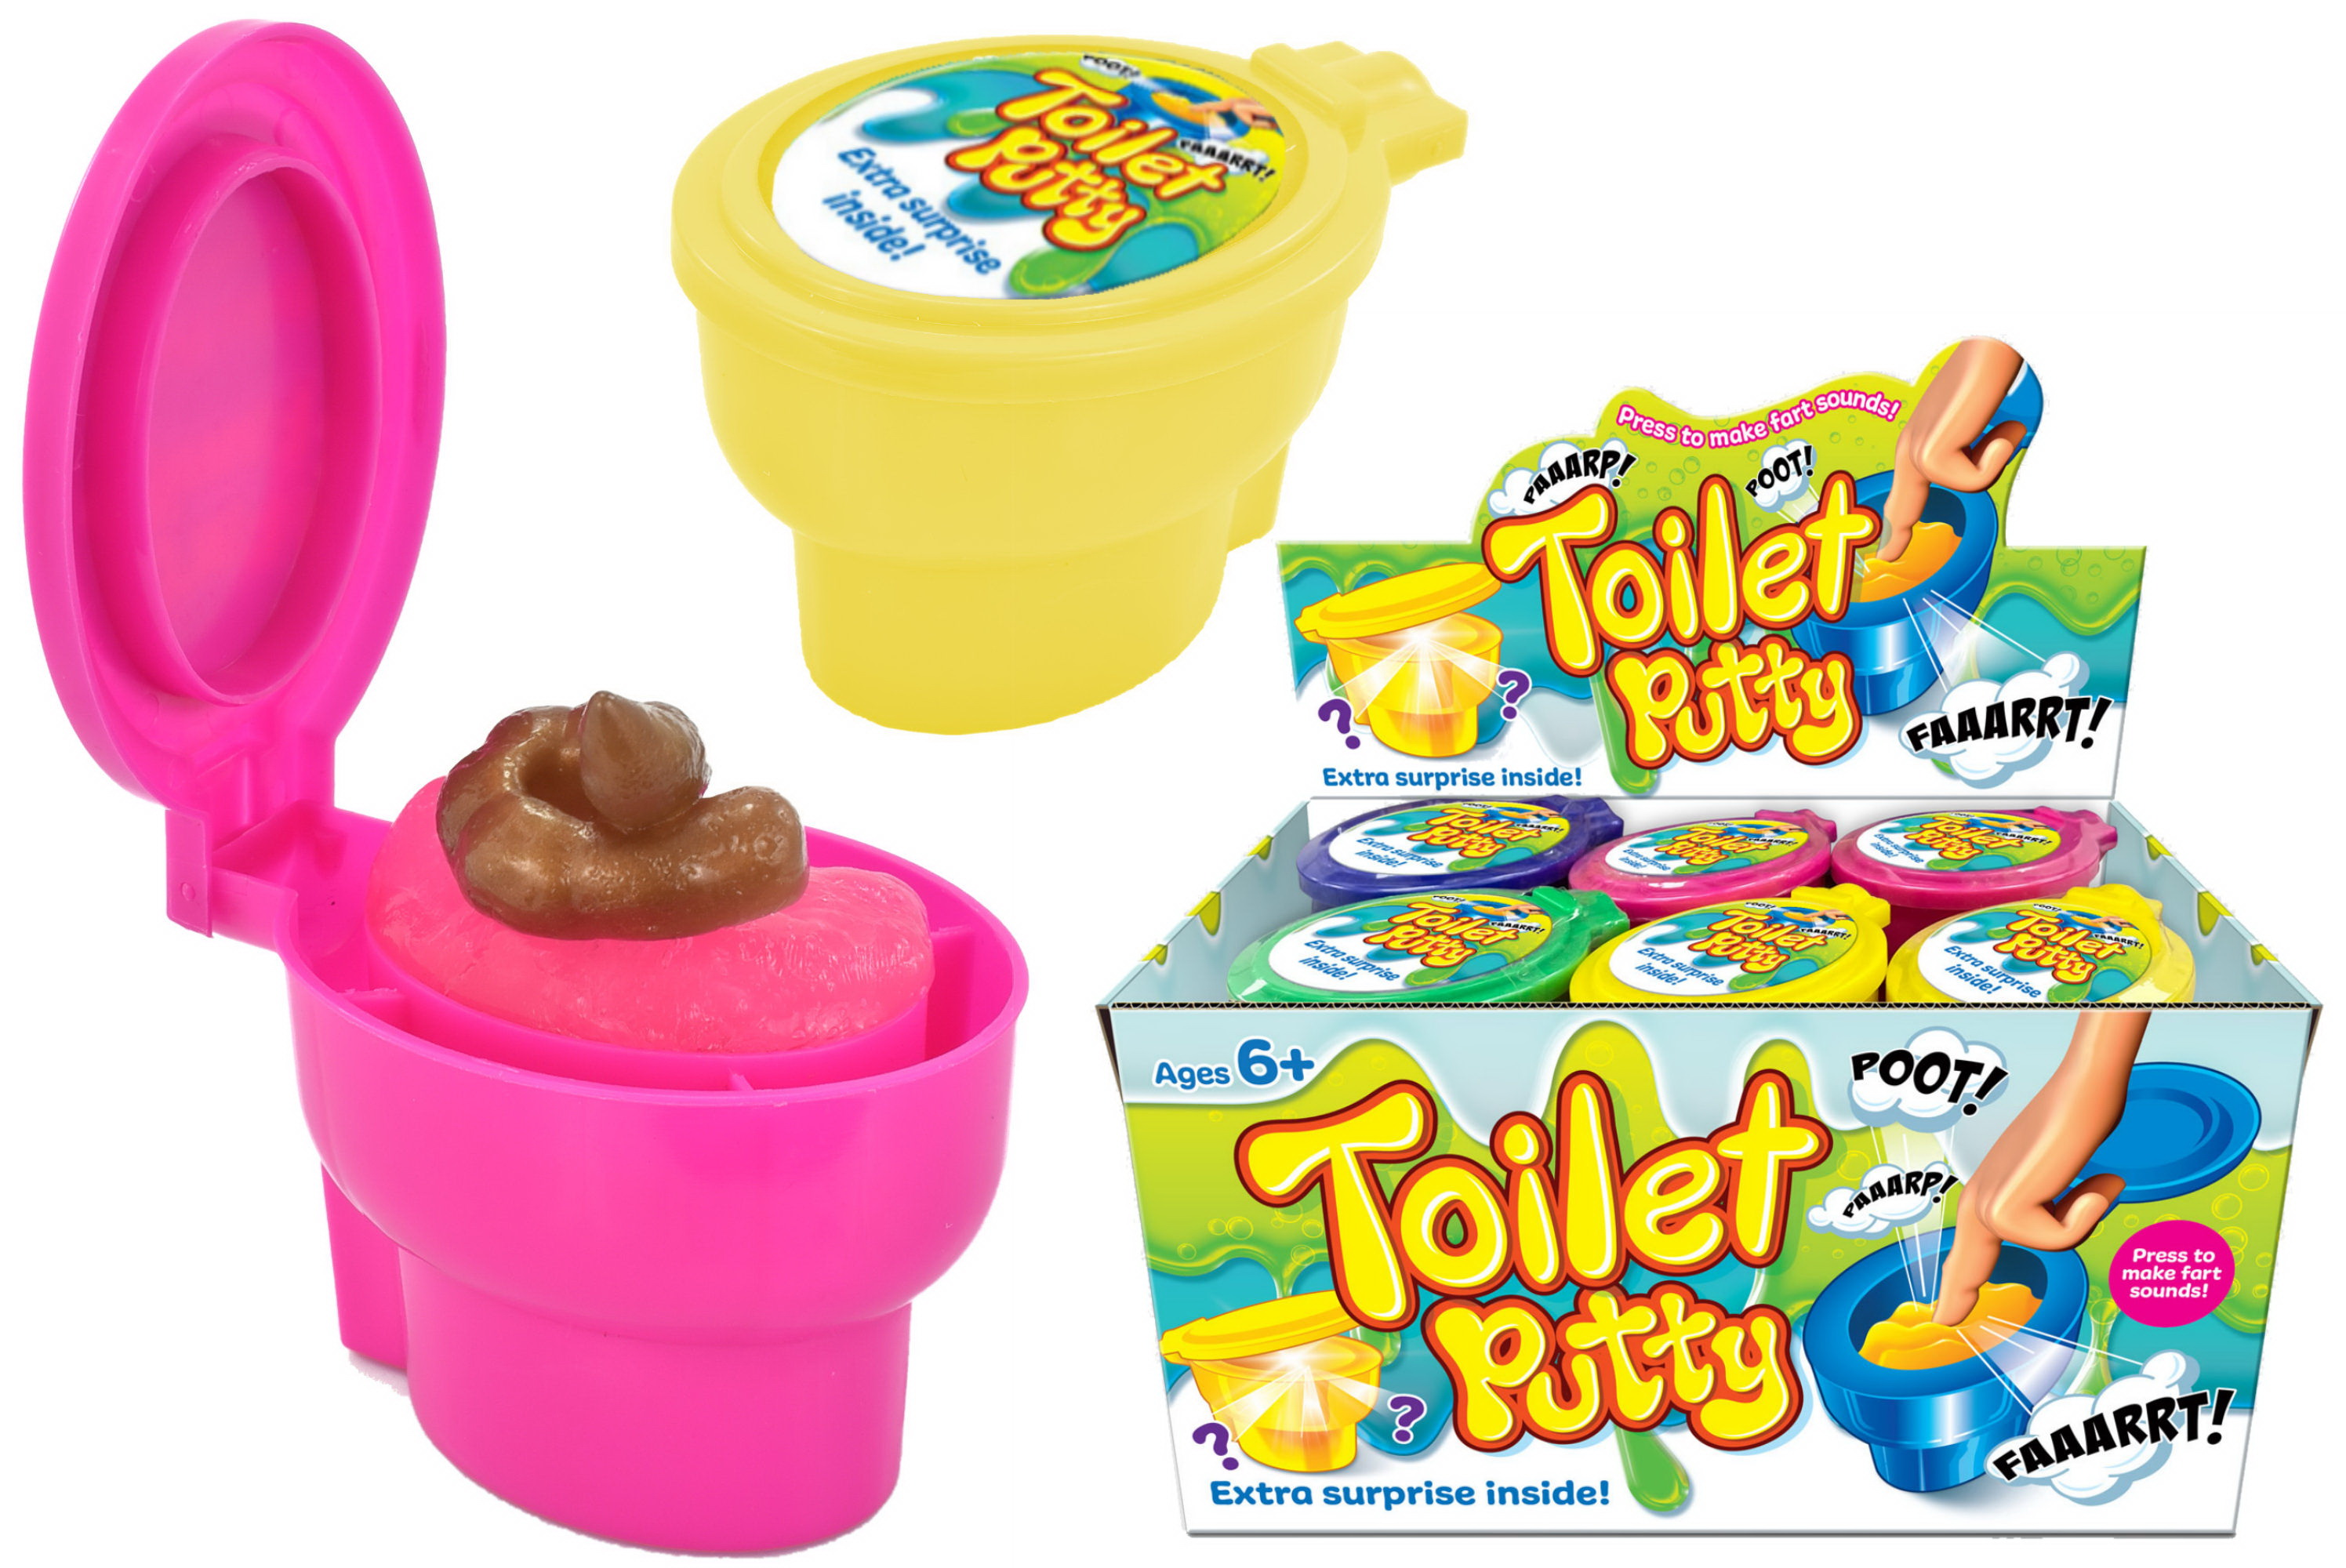 Toilet Putty (+ Surprise) In Display Box - Fart Family